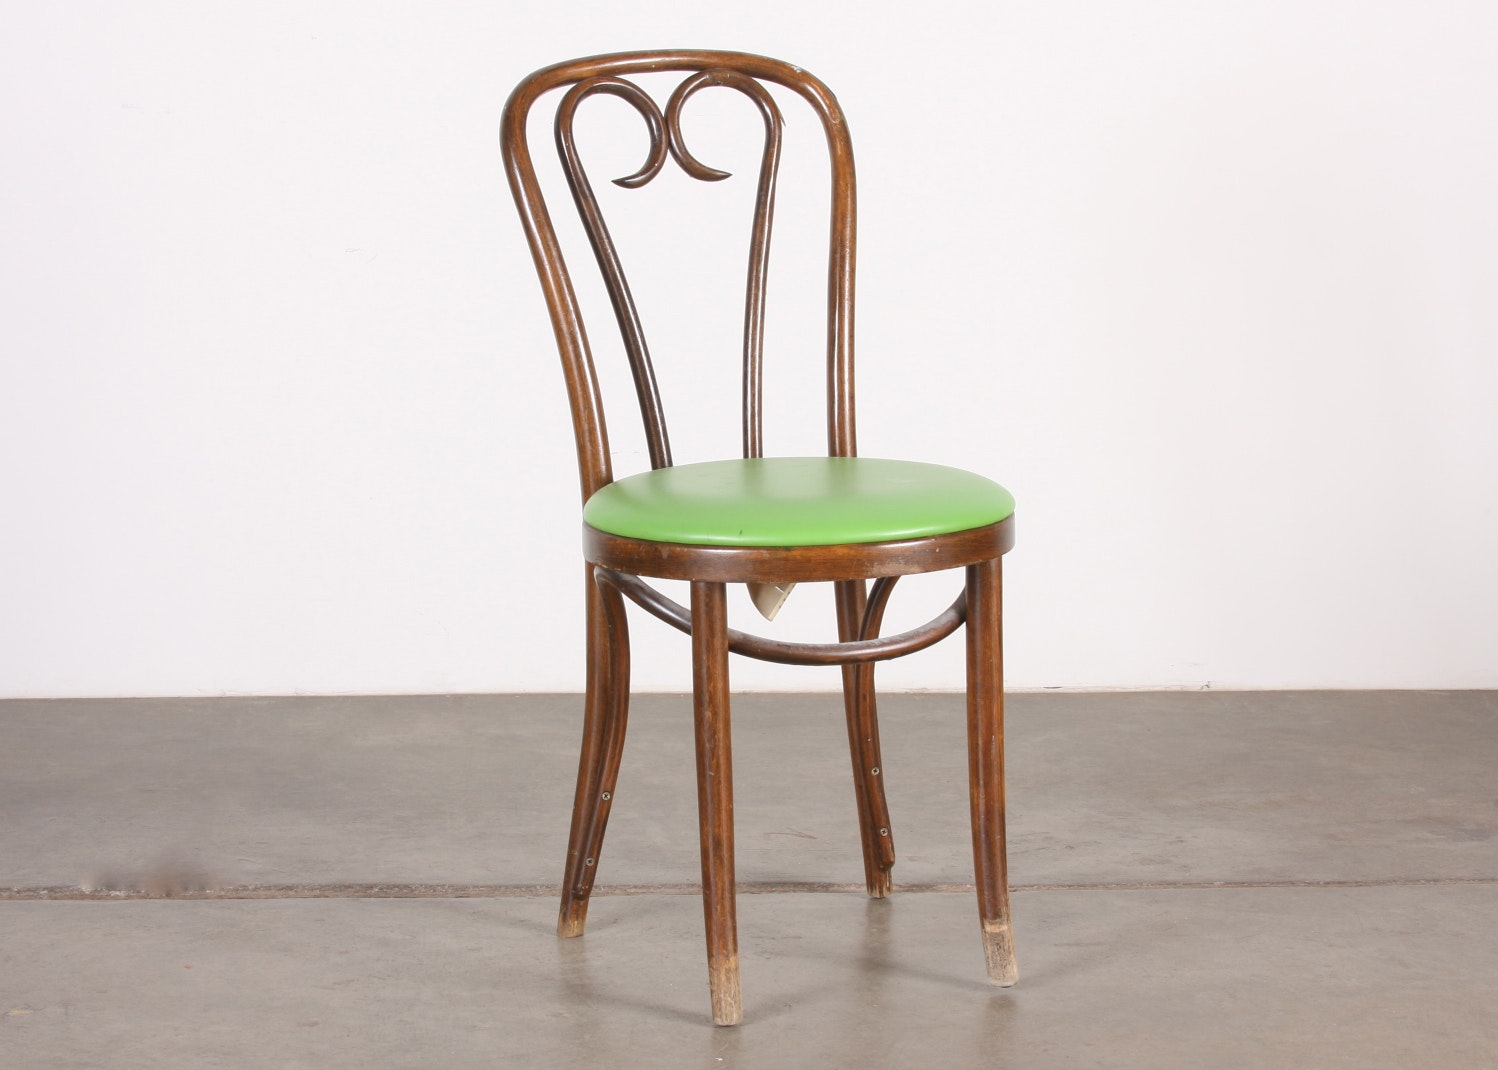 Vintage Bentwood Chair With Green Vinyl Seat ...